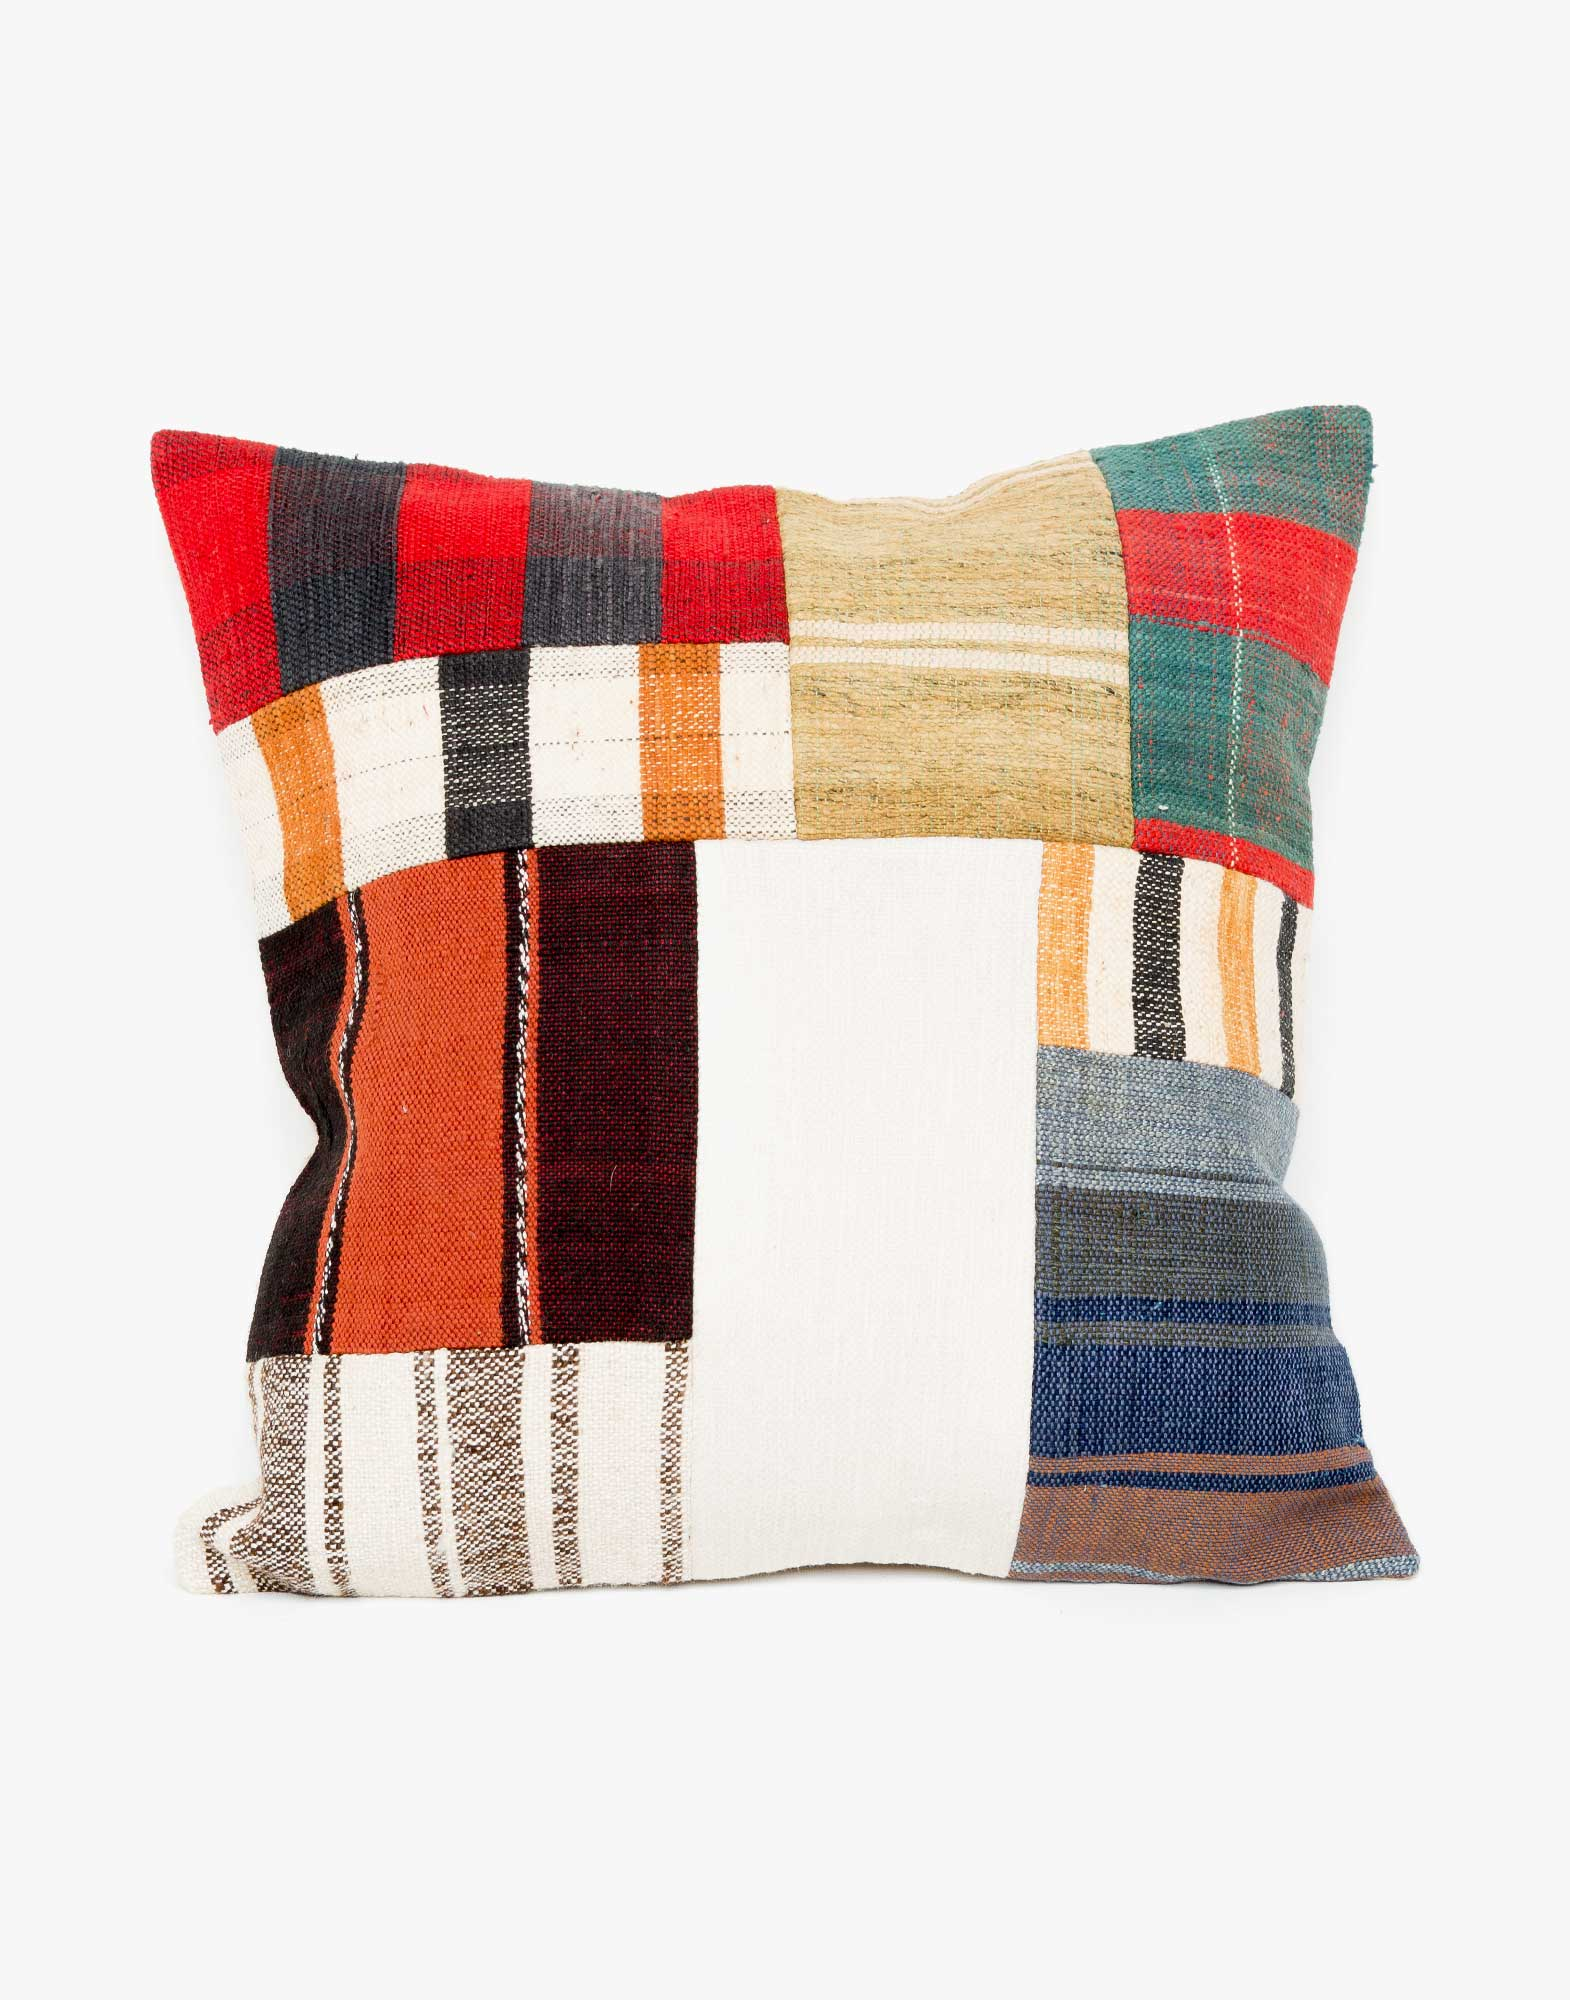 Handwoven Vintage Kilim Patchwork Pillow